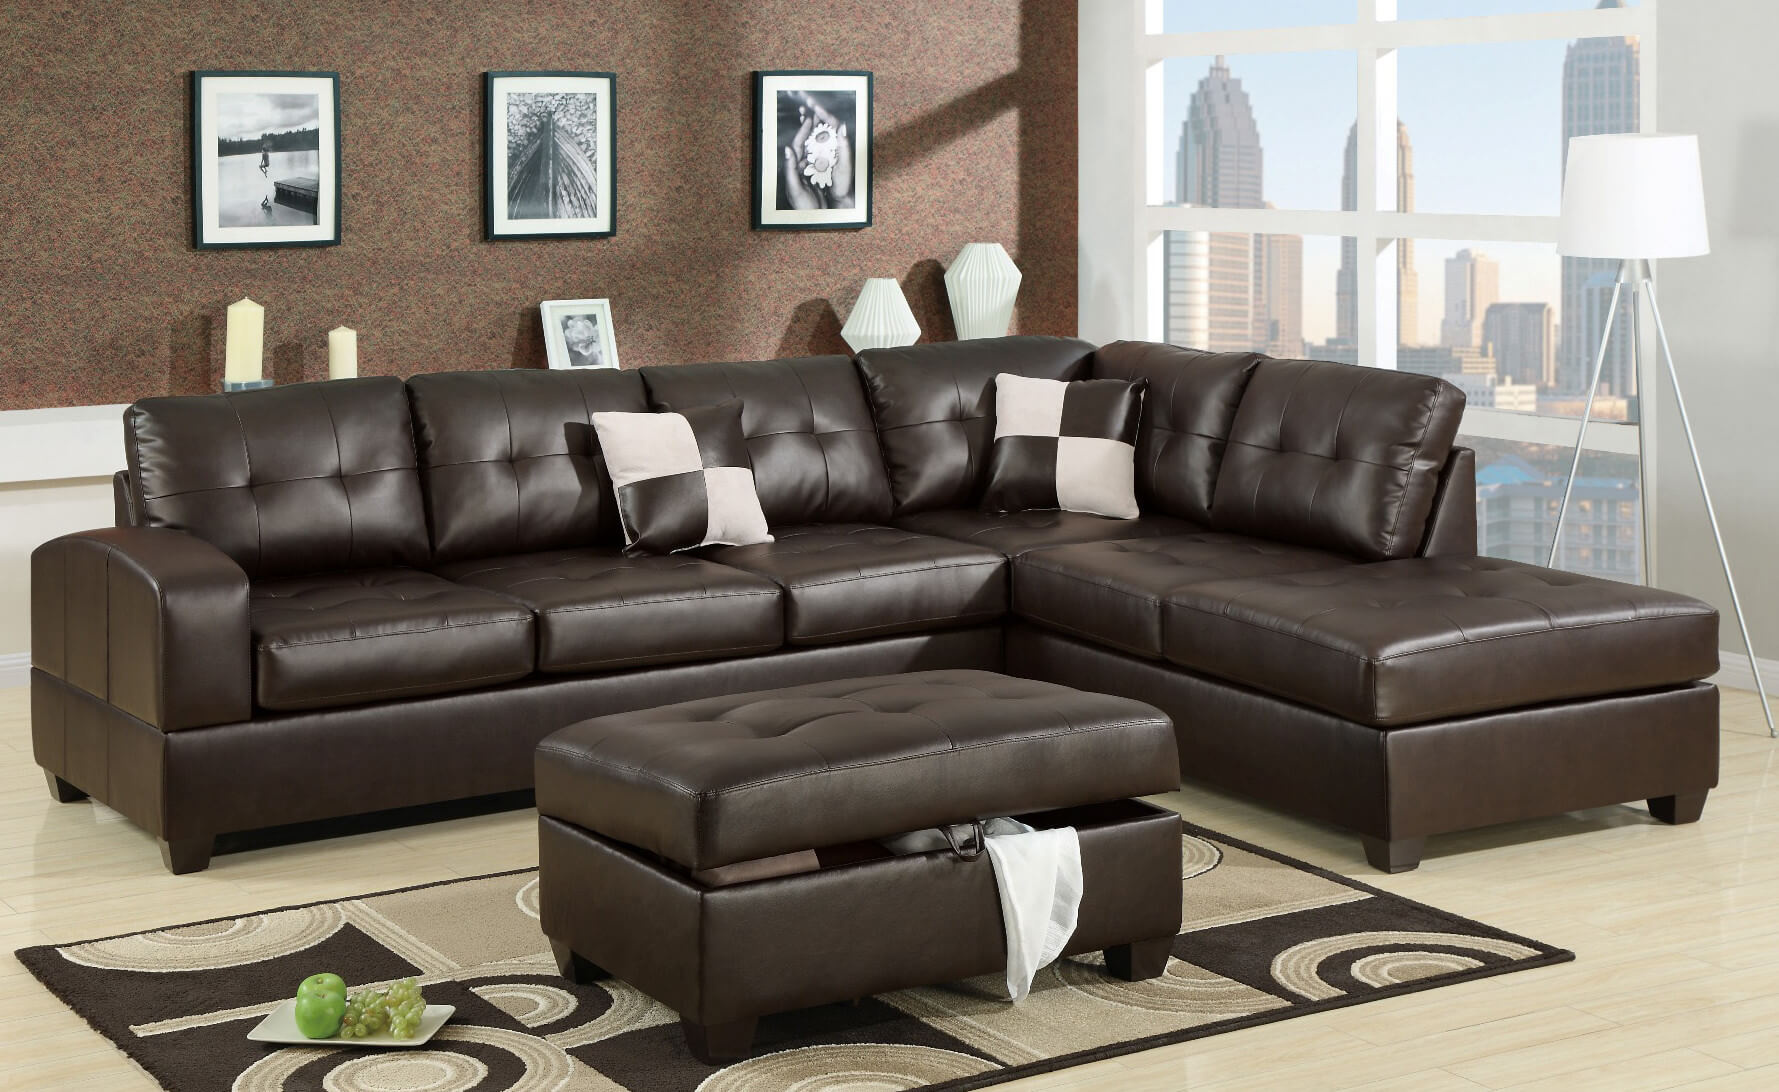 This elegantly modern piece is crafted with bonded leather.